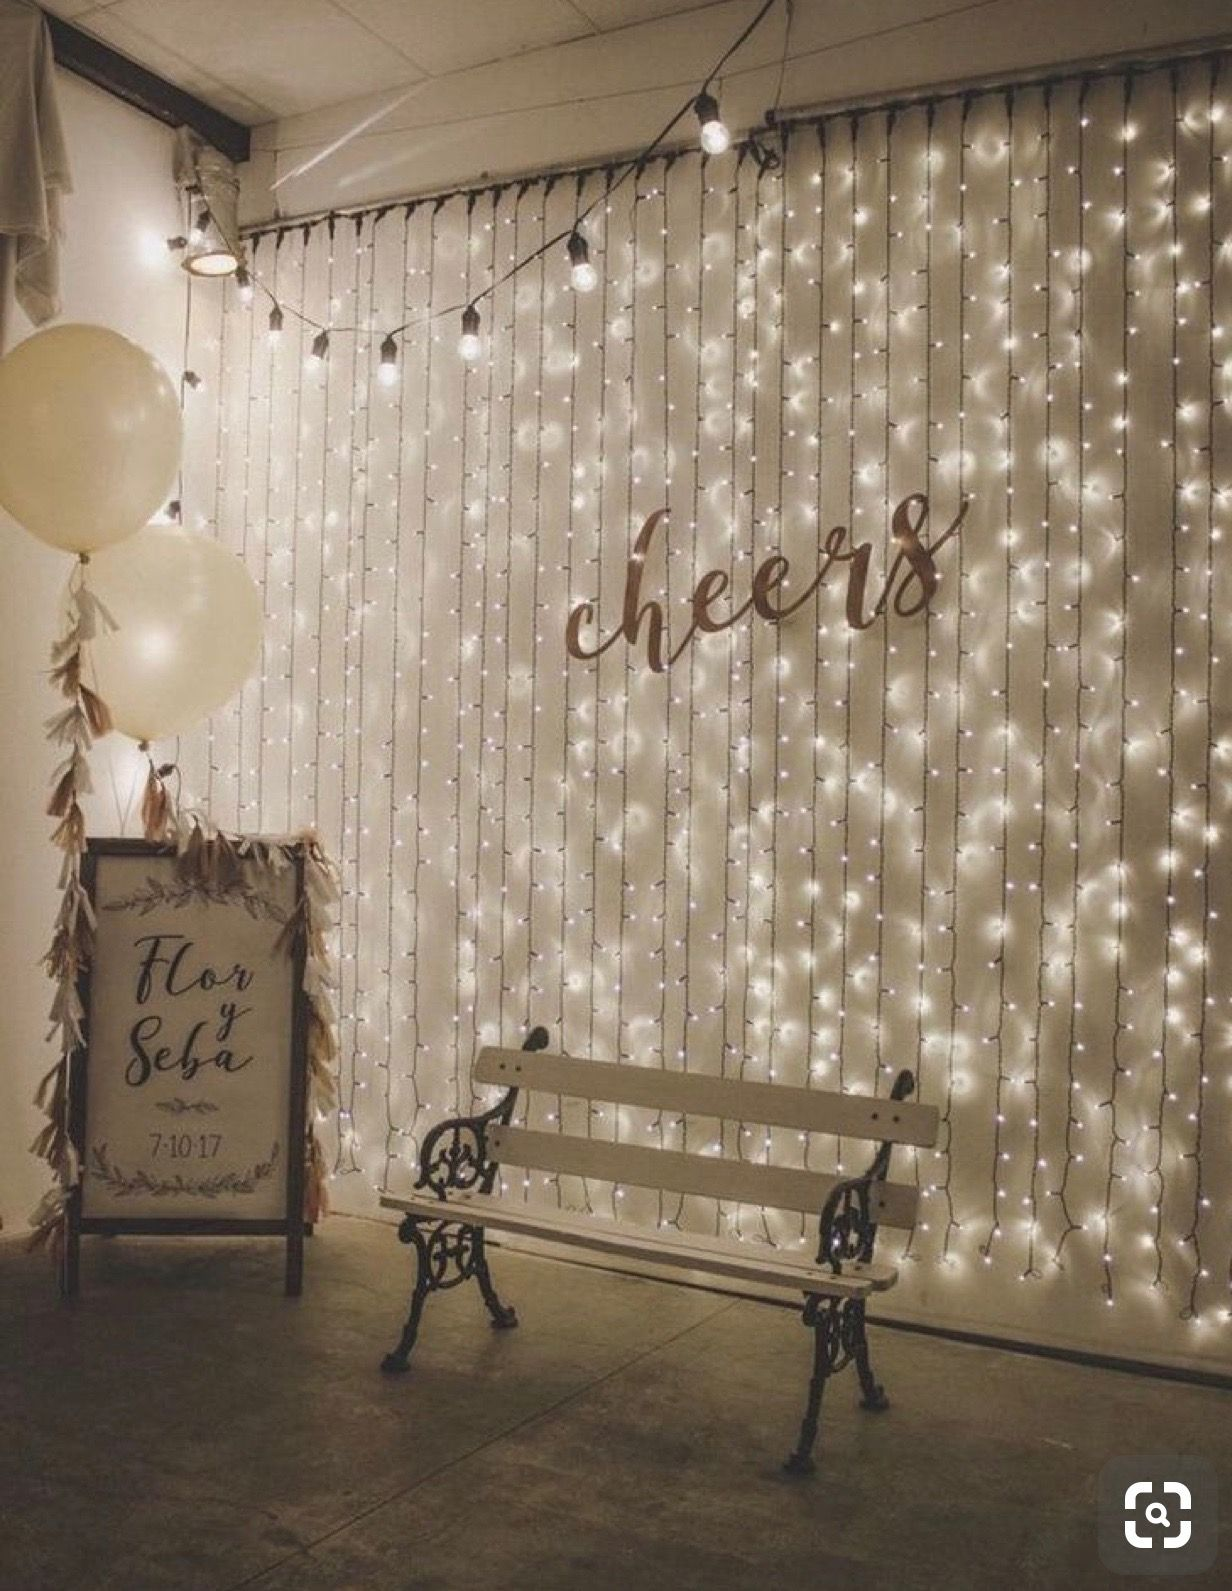 Pin By D On Events Celebrations Entertaining Wedding Ambiance Wedding Decorations Booth Backdrops